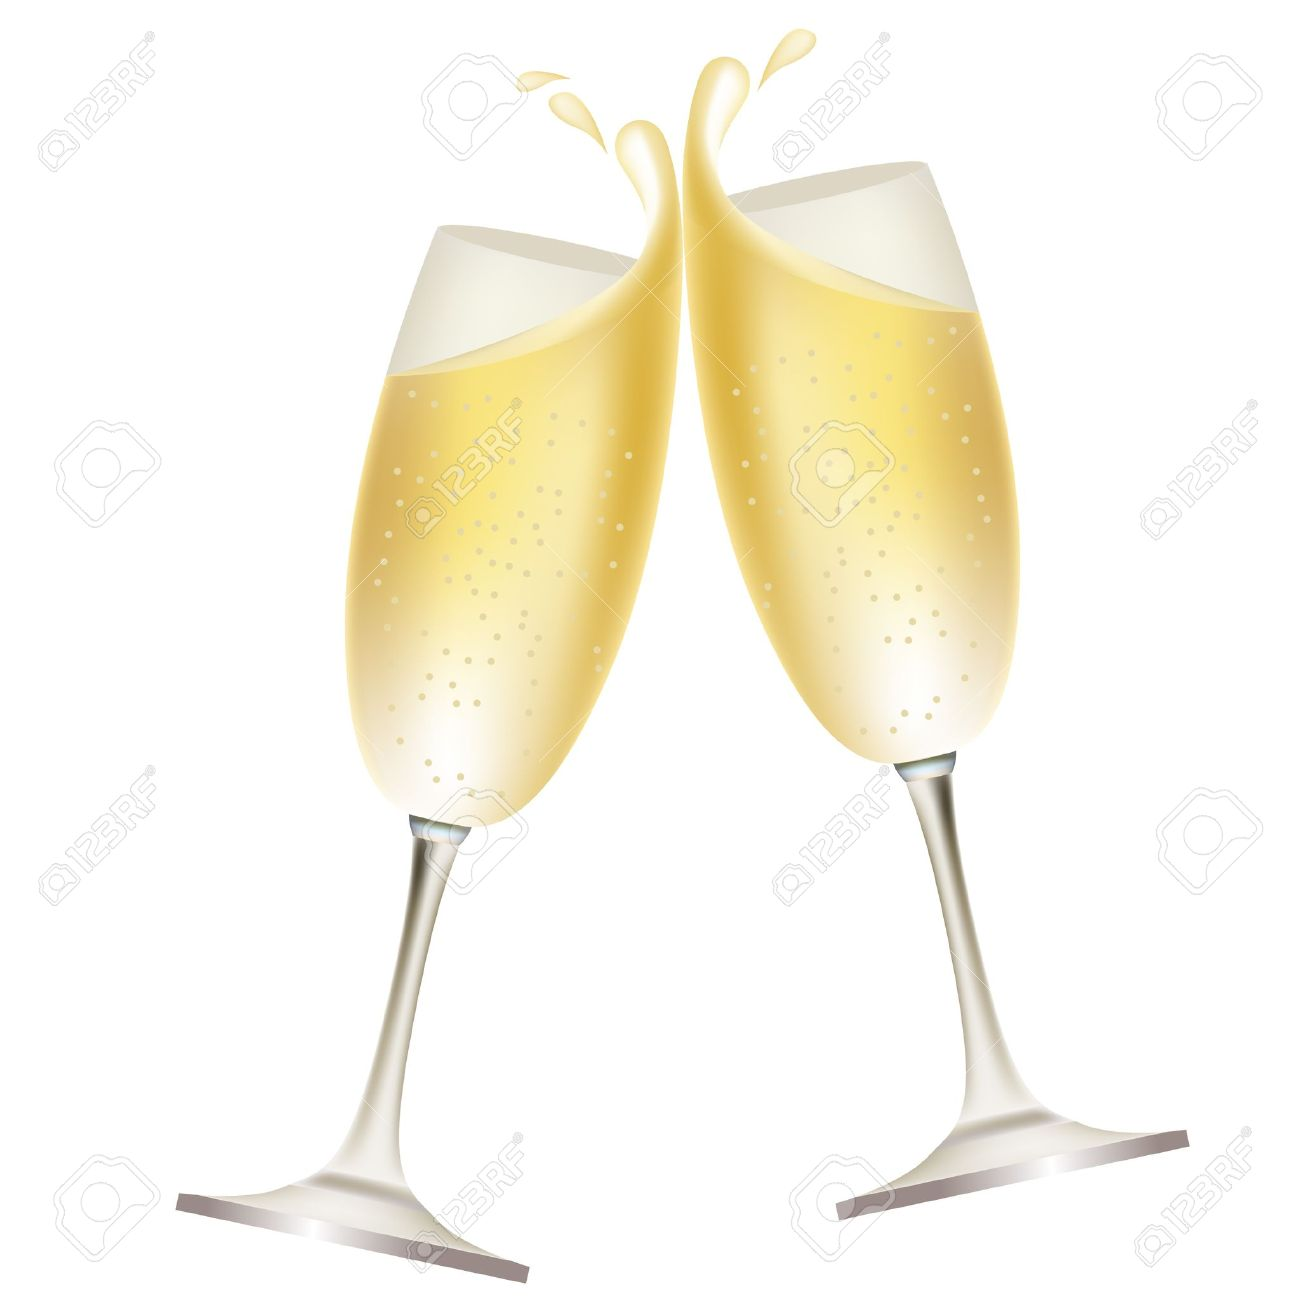 Transparant champagne clipart.